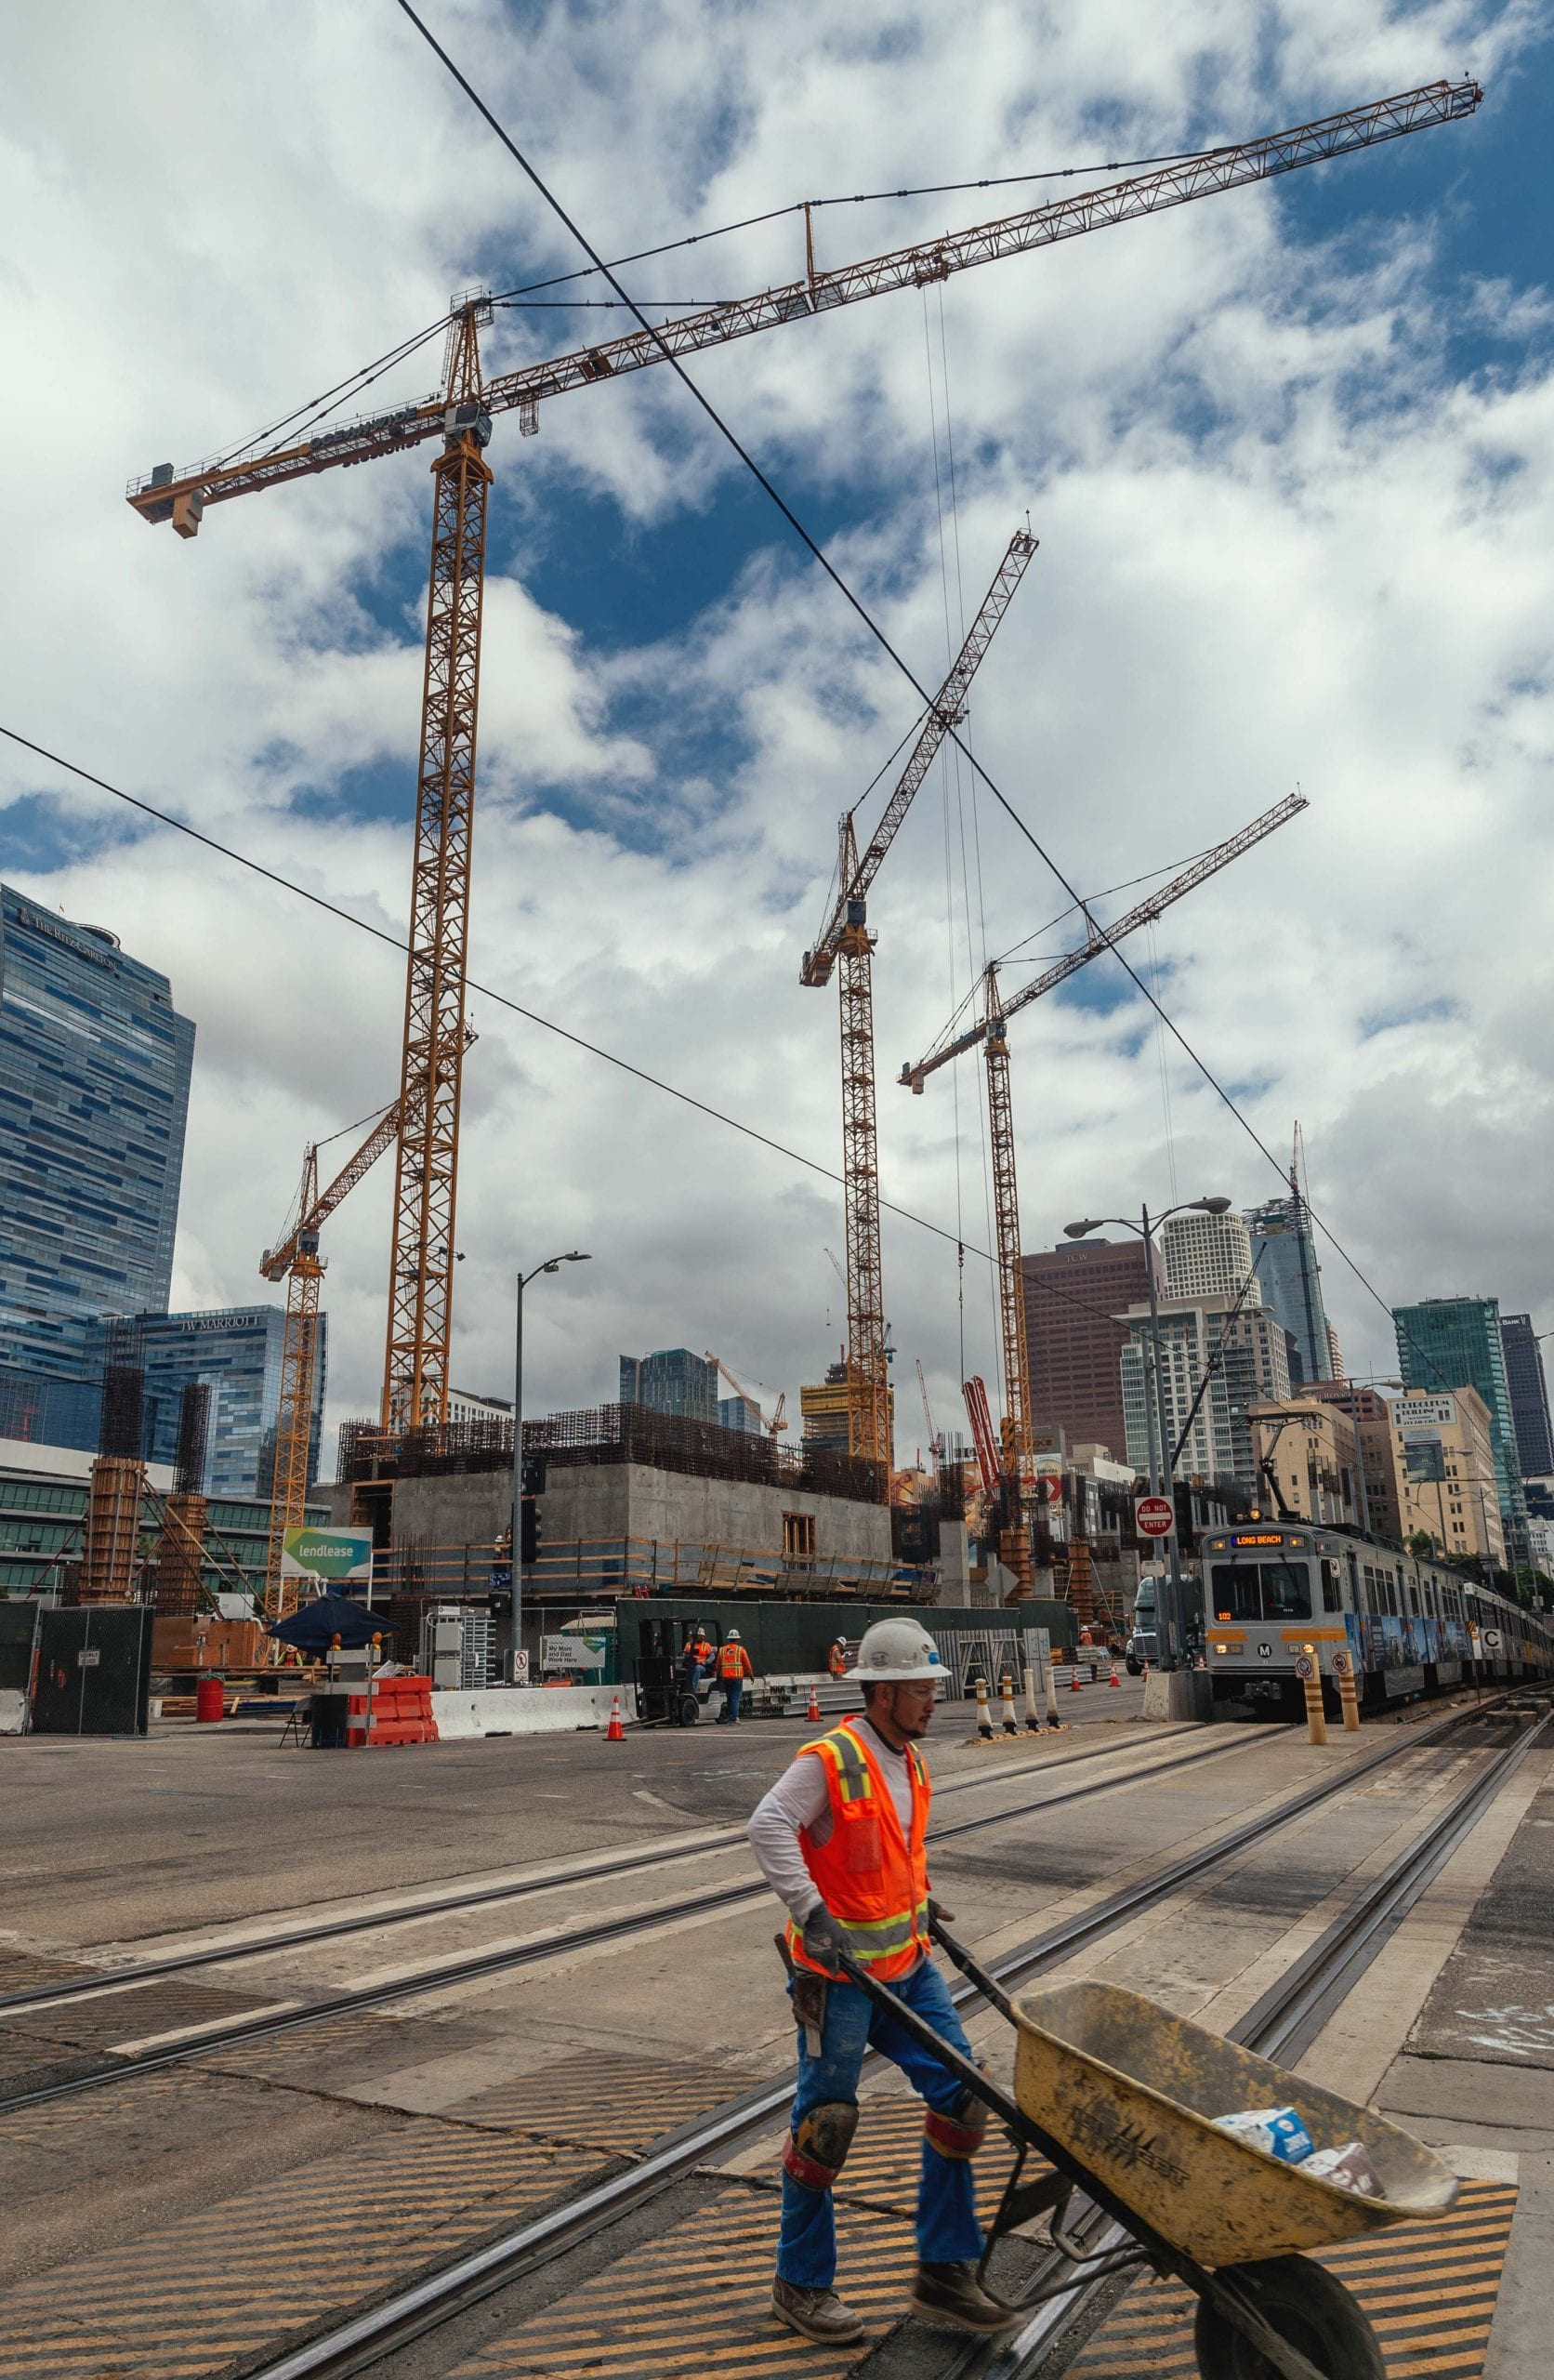 The Blue Line and new building construction near Staples Center and LA Live. Photo by Steve Hymon/Metro.